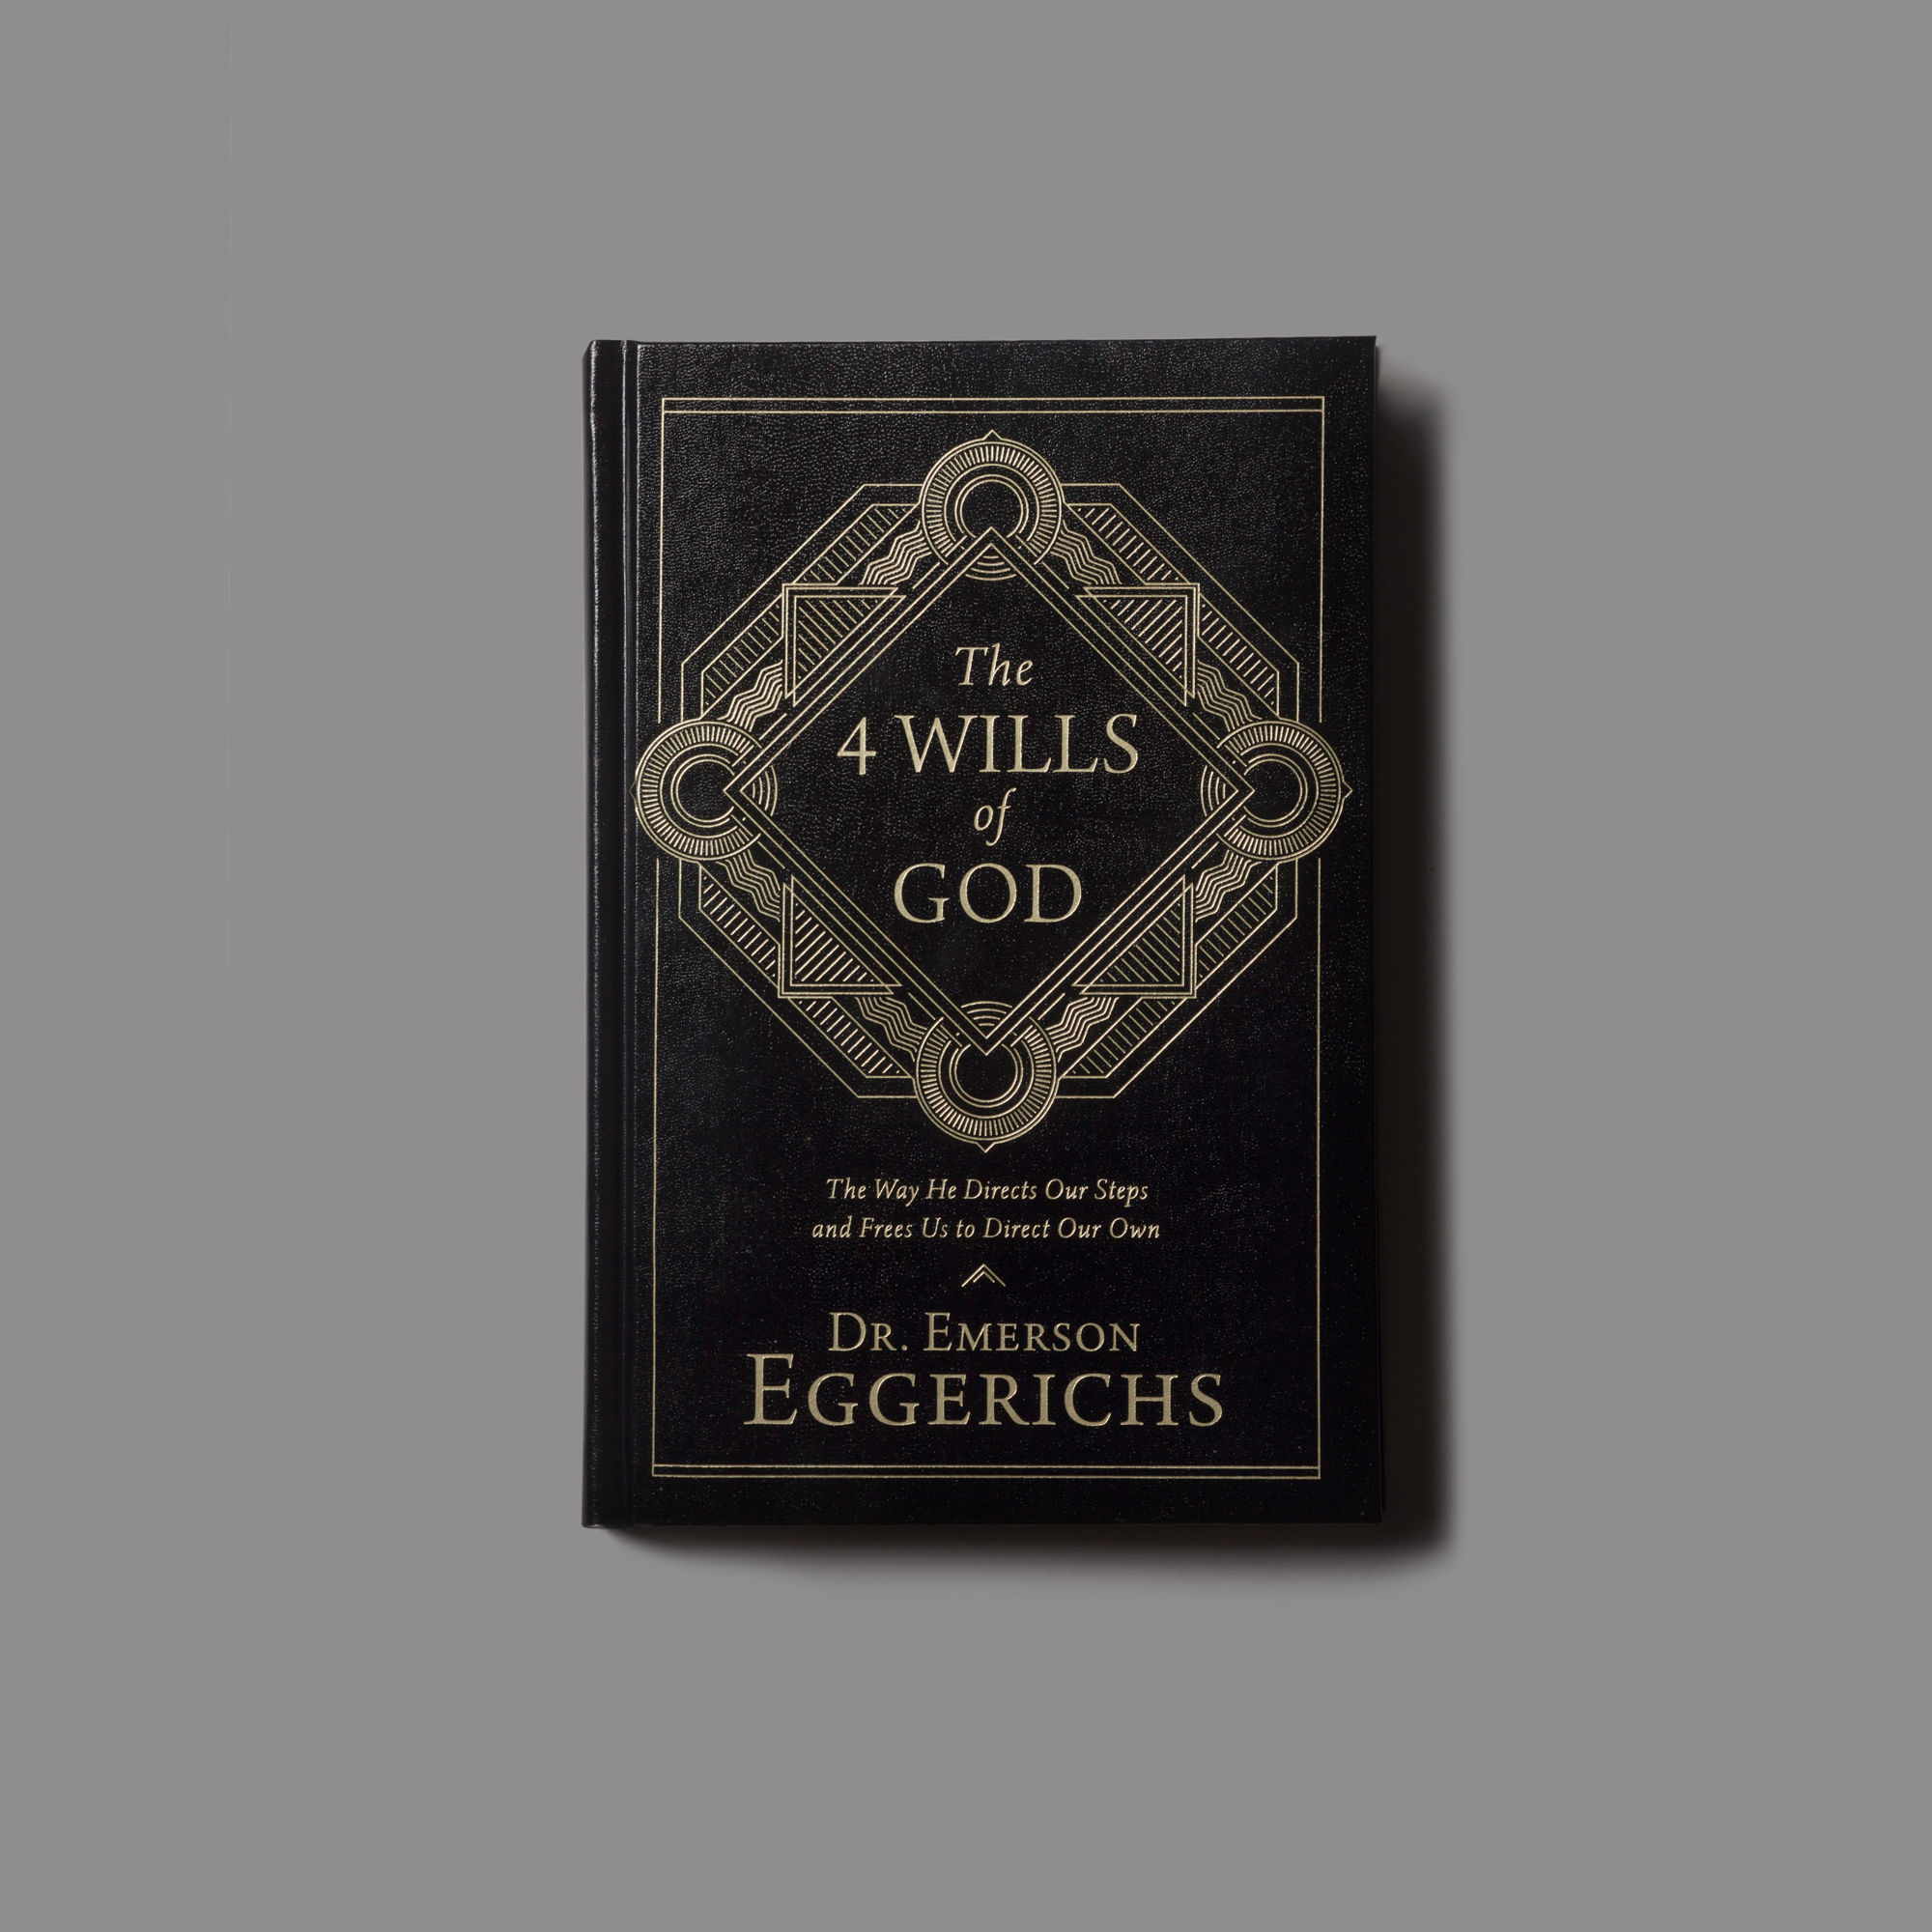 The 4 Wills of God - The Way He Directs Our Steps and Frees Us To Direct Our Own. Emerson Eggerichs believes there is a clear answer to finding God's will. The Bible itself reveals the clue–a secret hidden in plain sight. Should you take the job? Quit the job? Begin a relationship? End a relationship? Move? Plant roots? How do we find God's will for life's big decisions? What if you had total freedom?